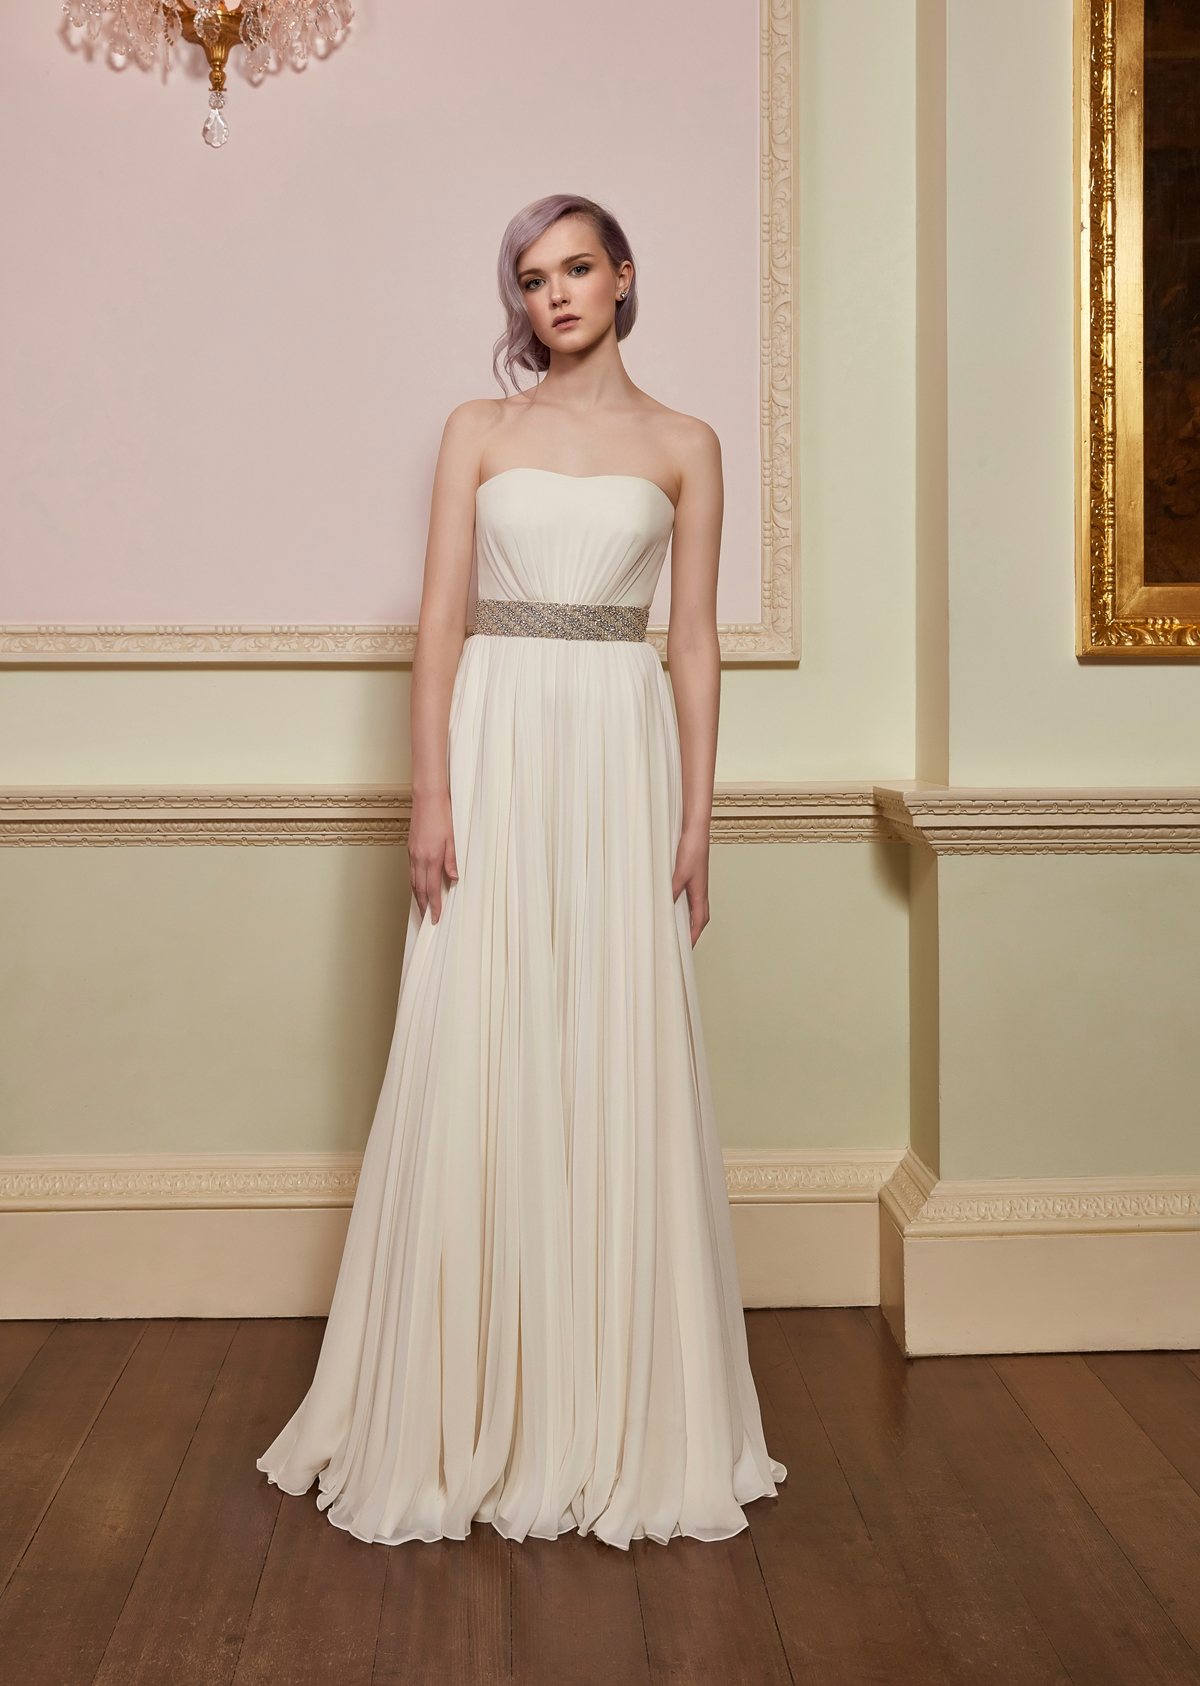 8890563e22c1 An Exclusive Discount At The Jenny Packham London Flagship Store ...